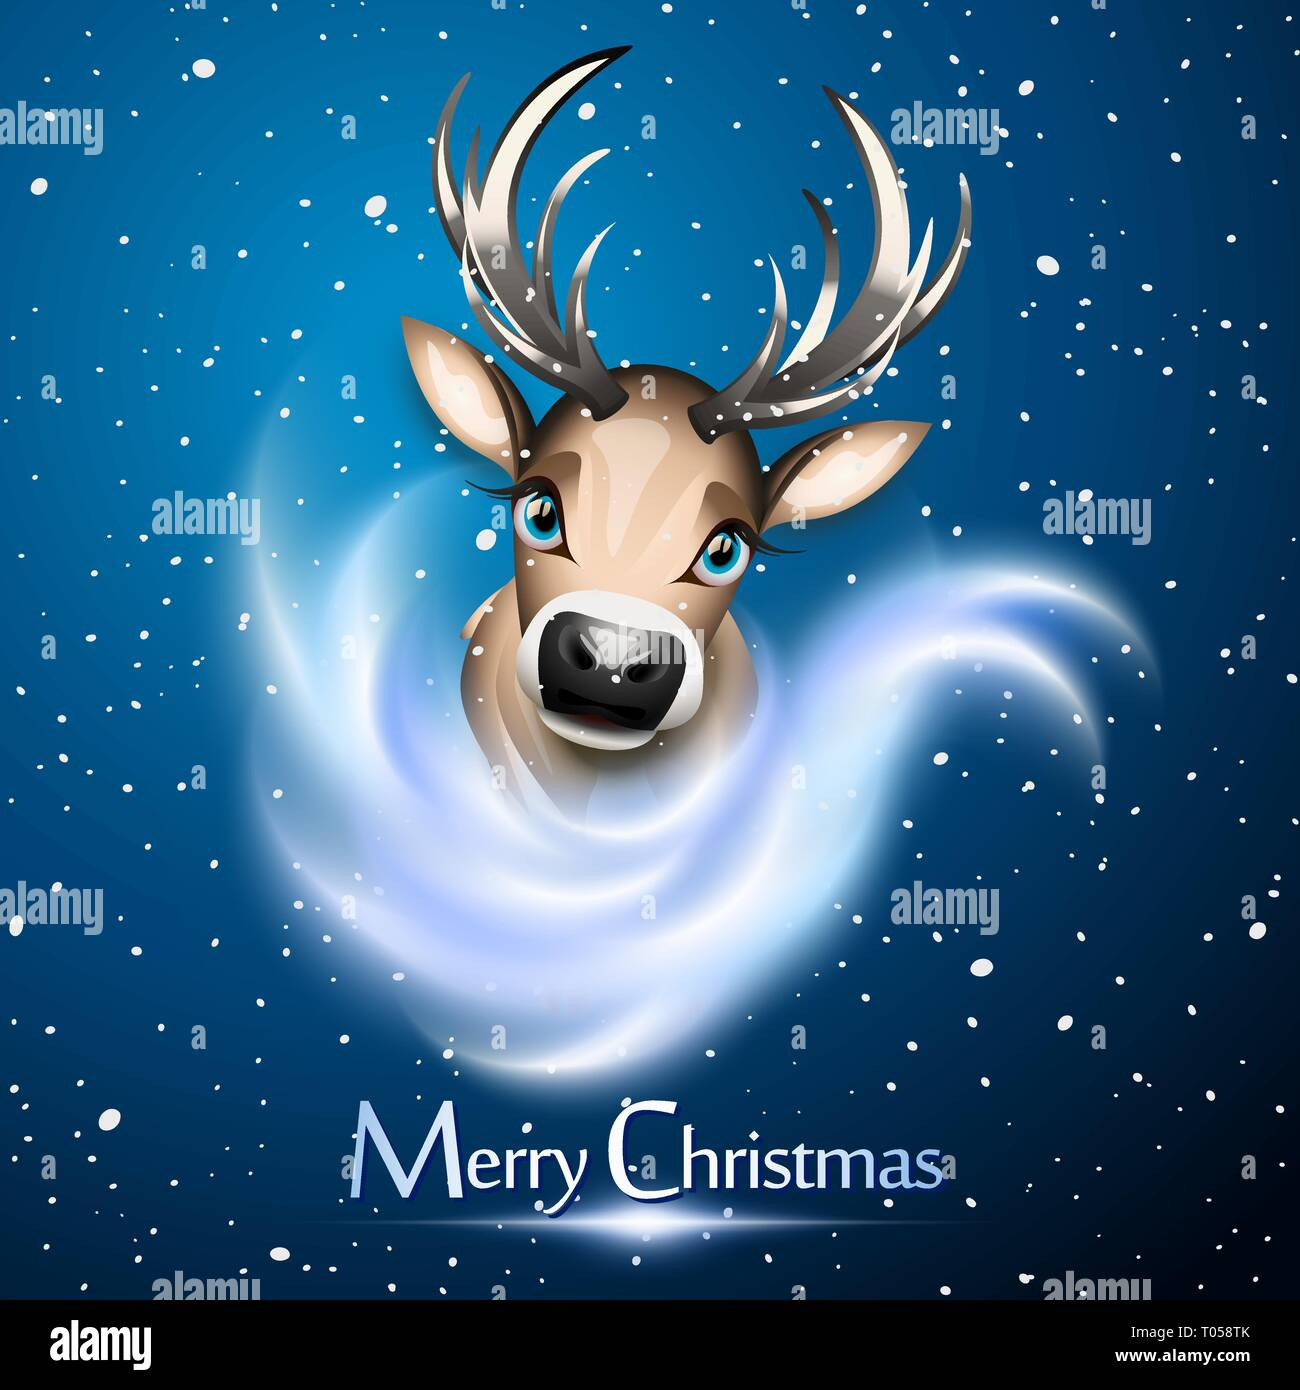 Christmas card with cute reindeer over snow and bue background - Stock Image